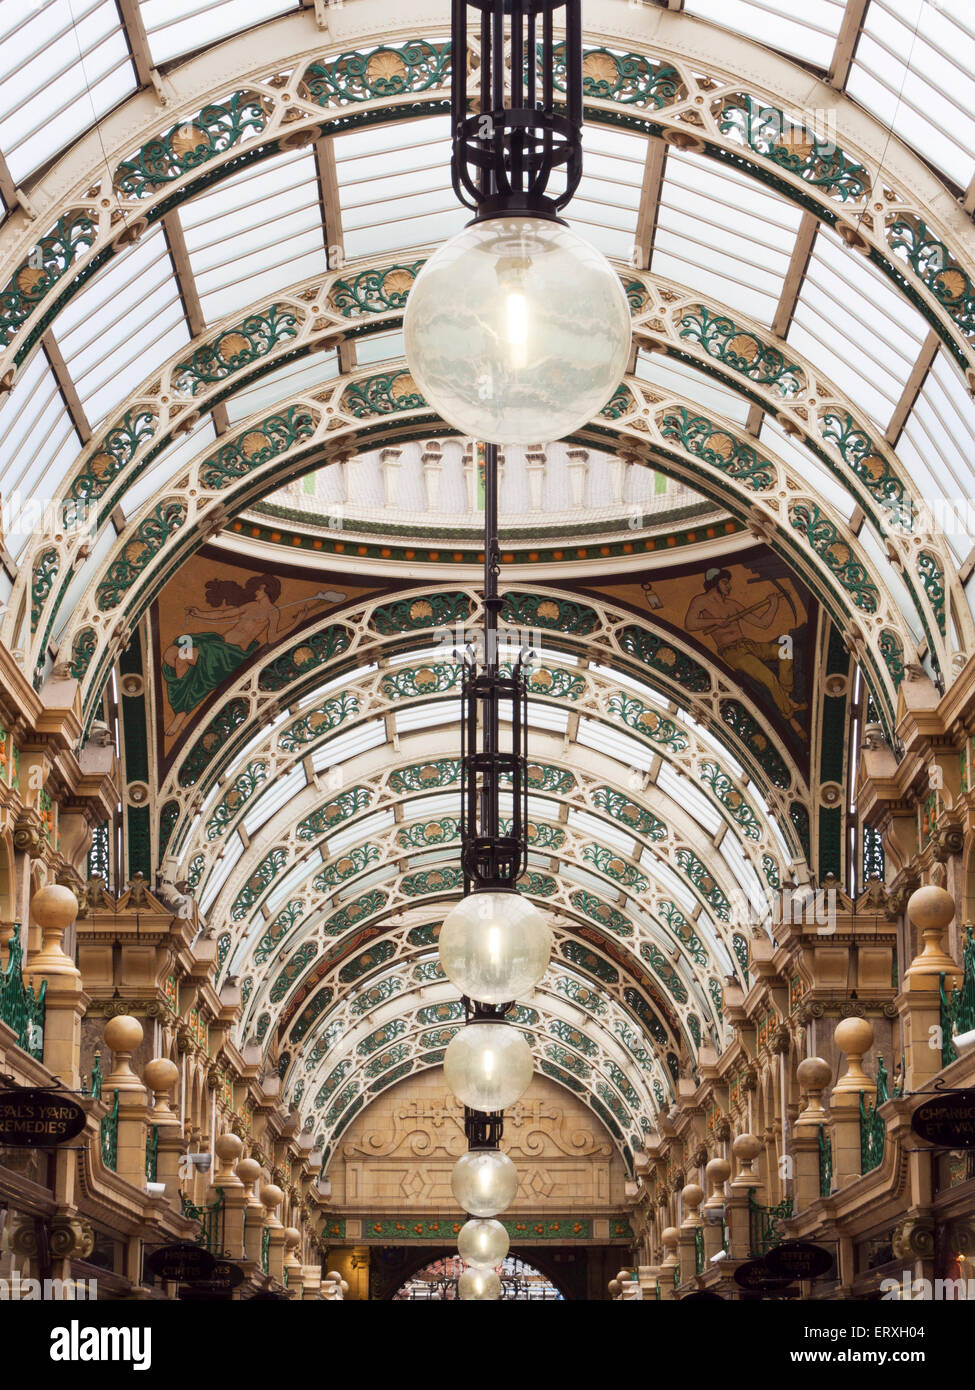 Ornate Glass Roof at County Arcade in the Victoria Quarter Leeds West Yorkshire England - Stock Image